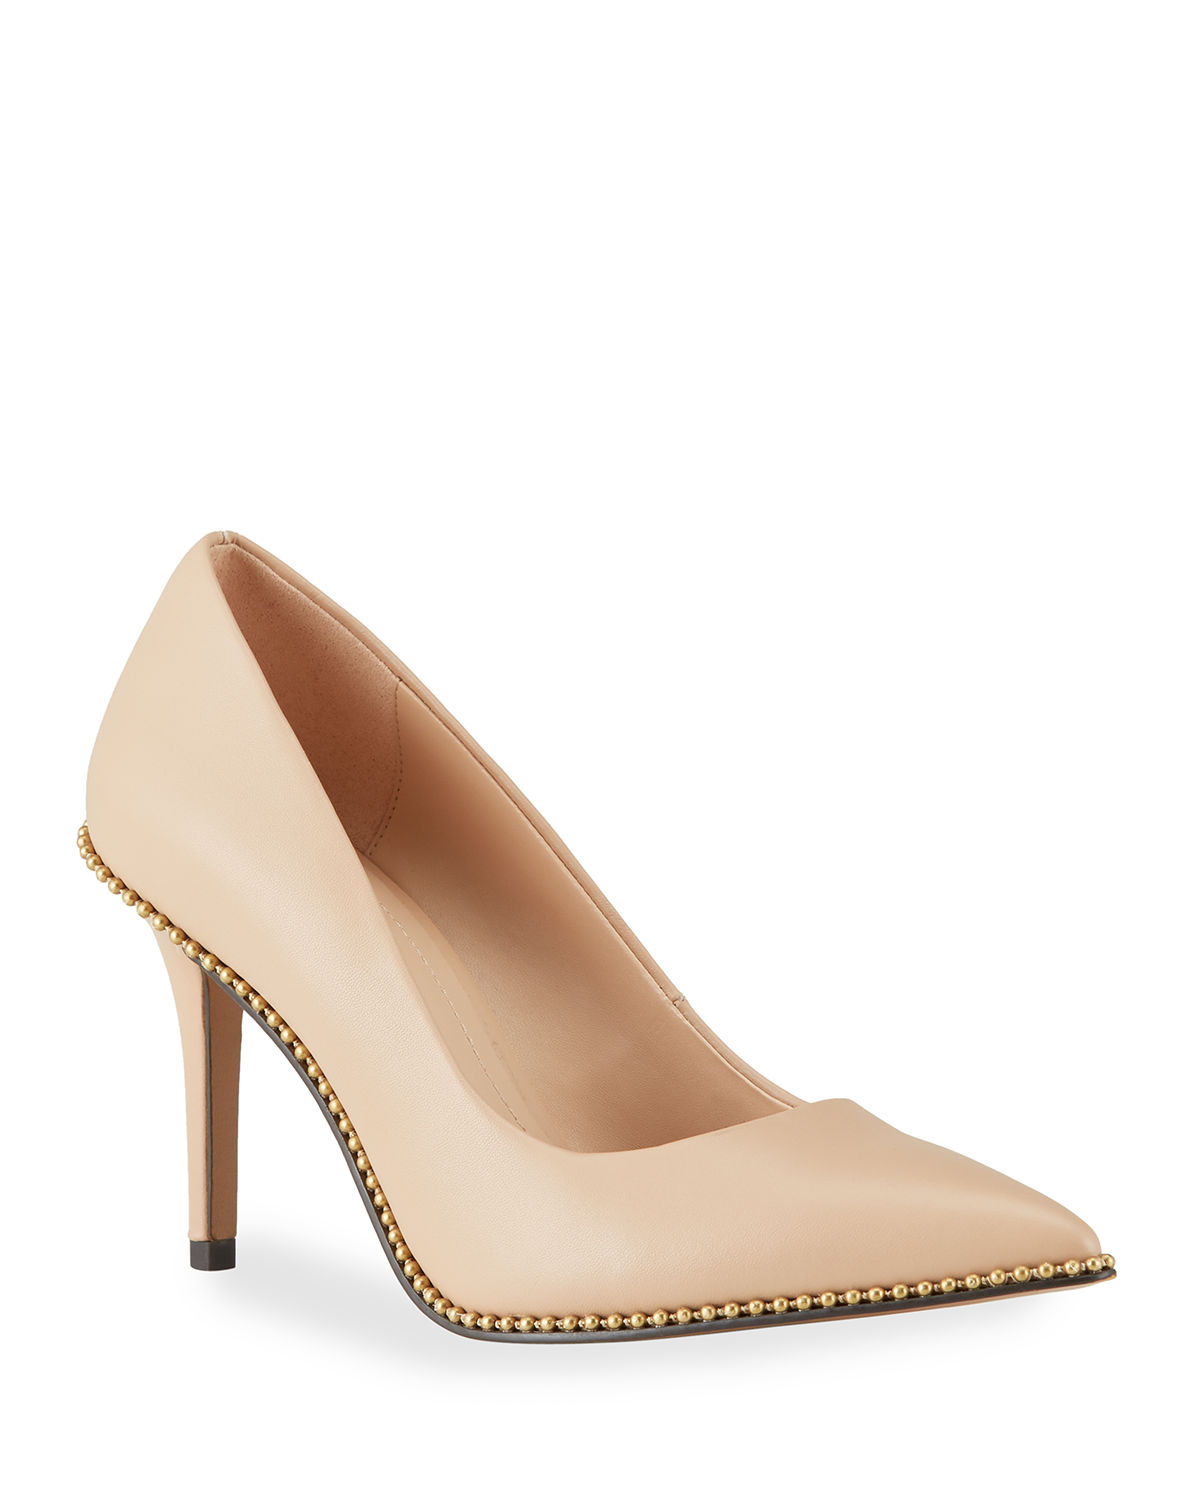 Waverly Bead-Chain Pumps